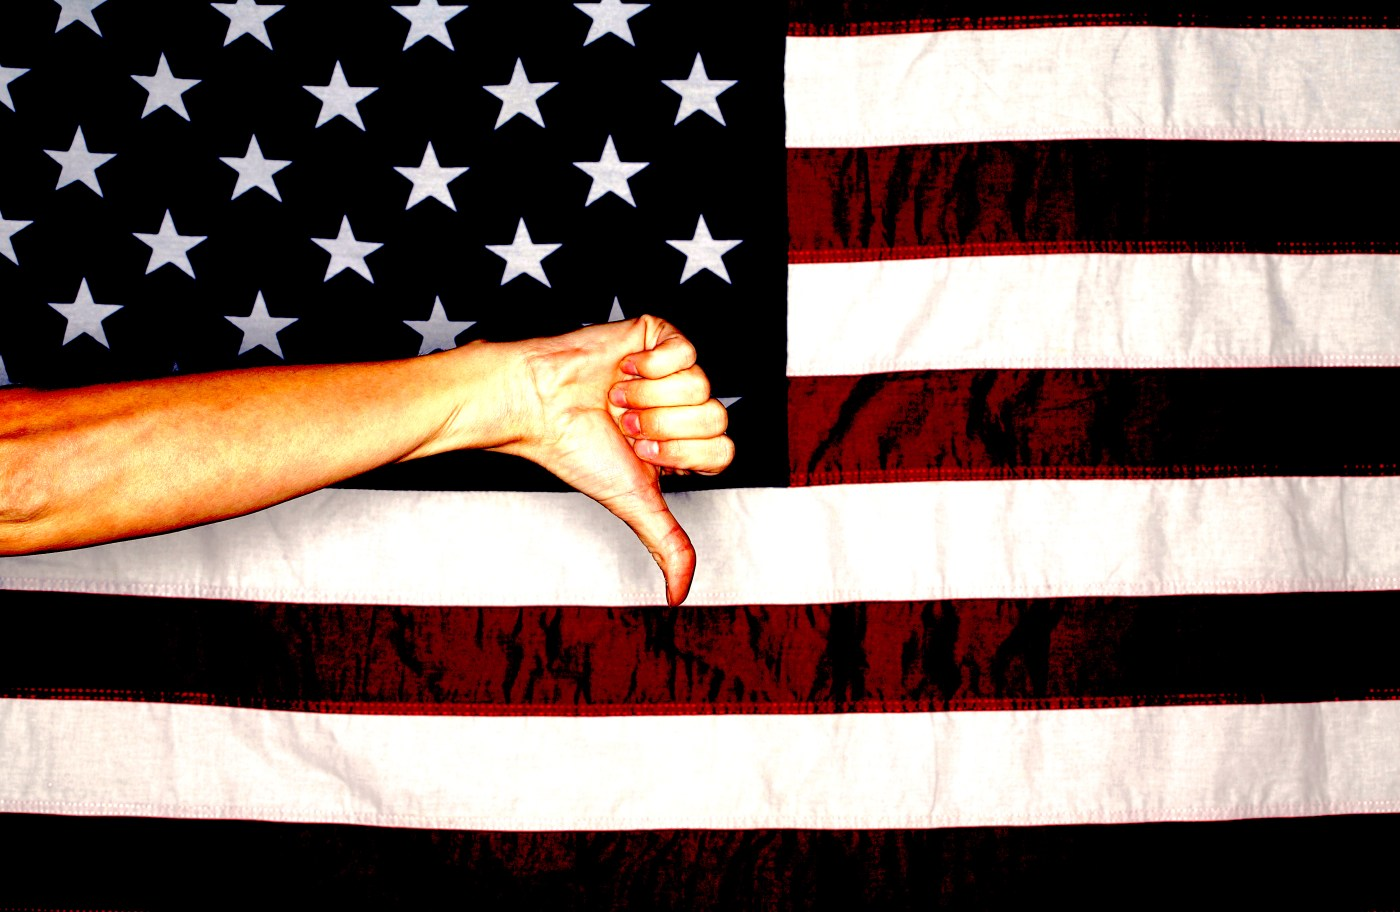 American flag with hand making a thumbs down